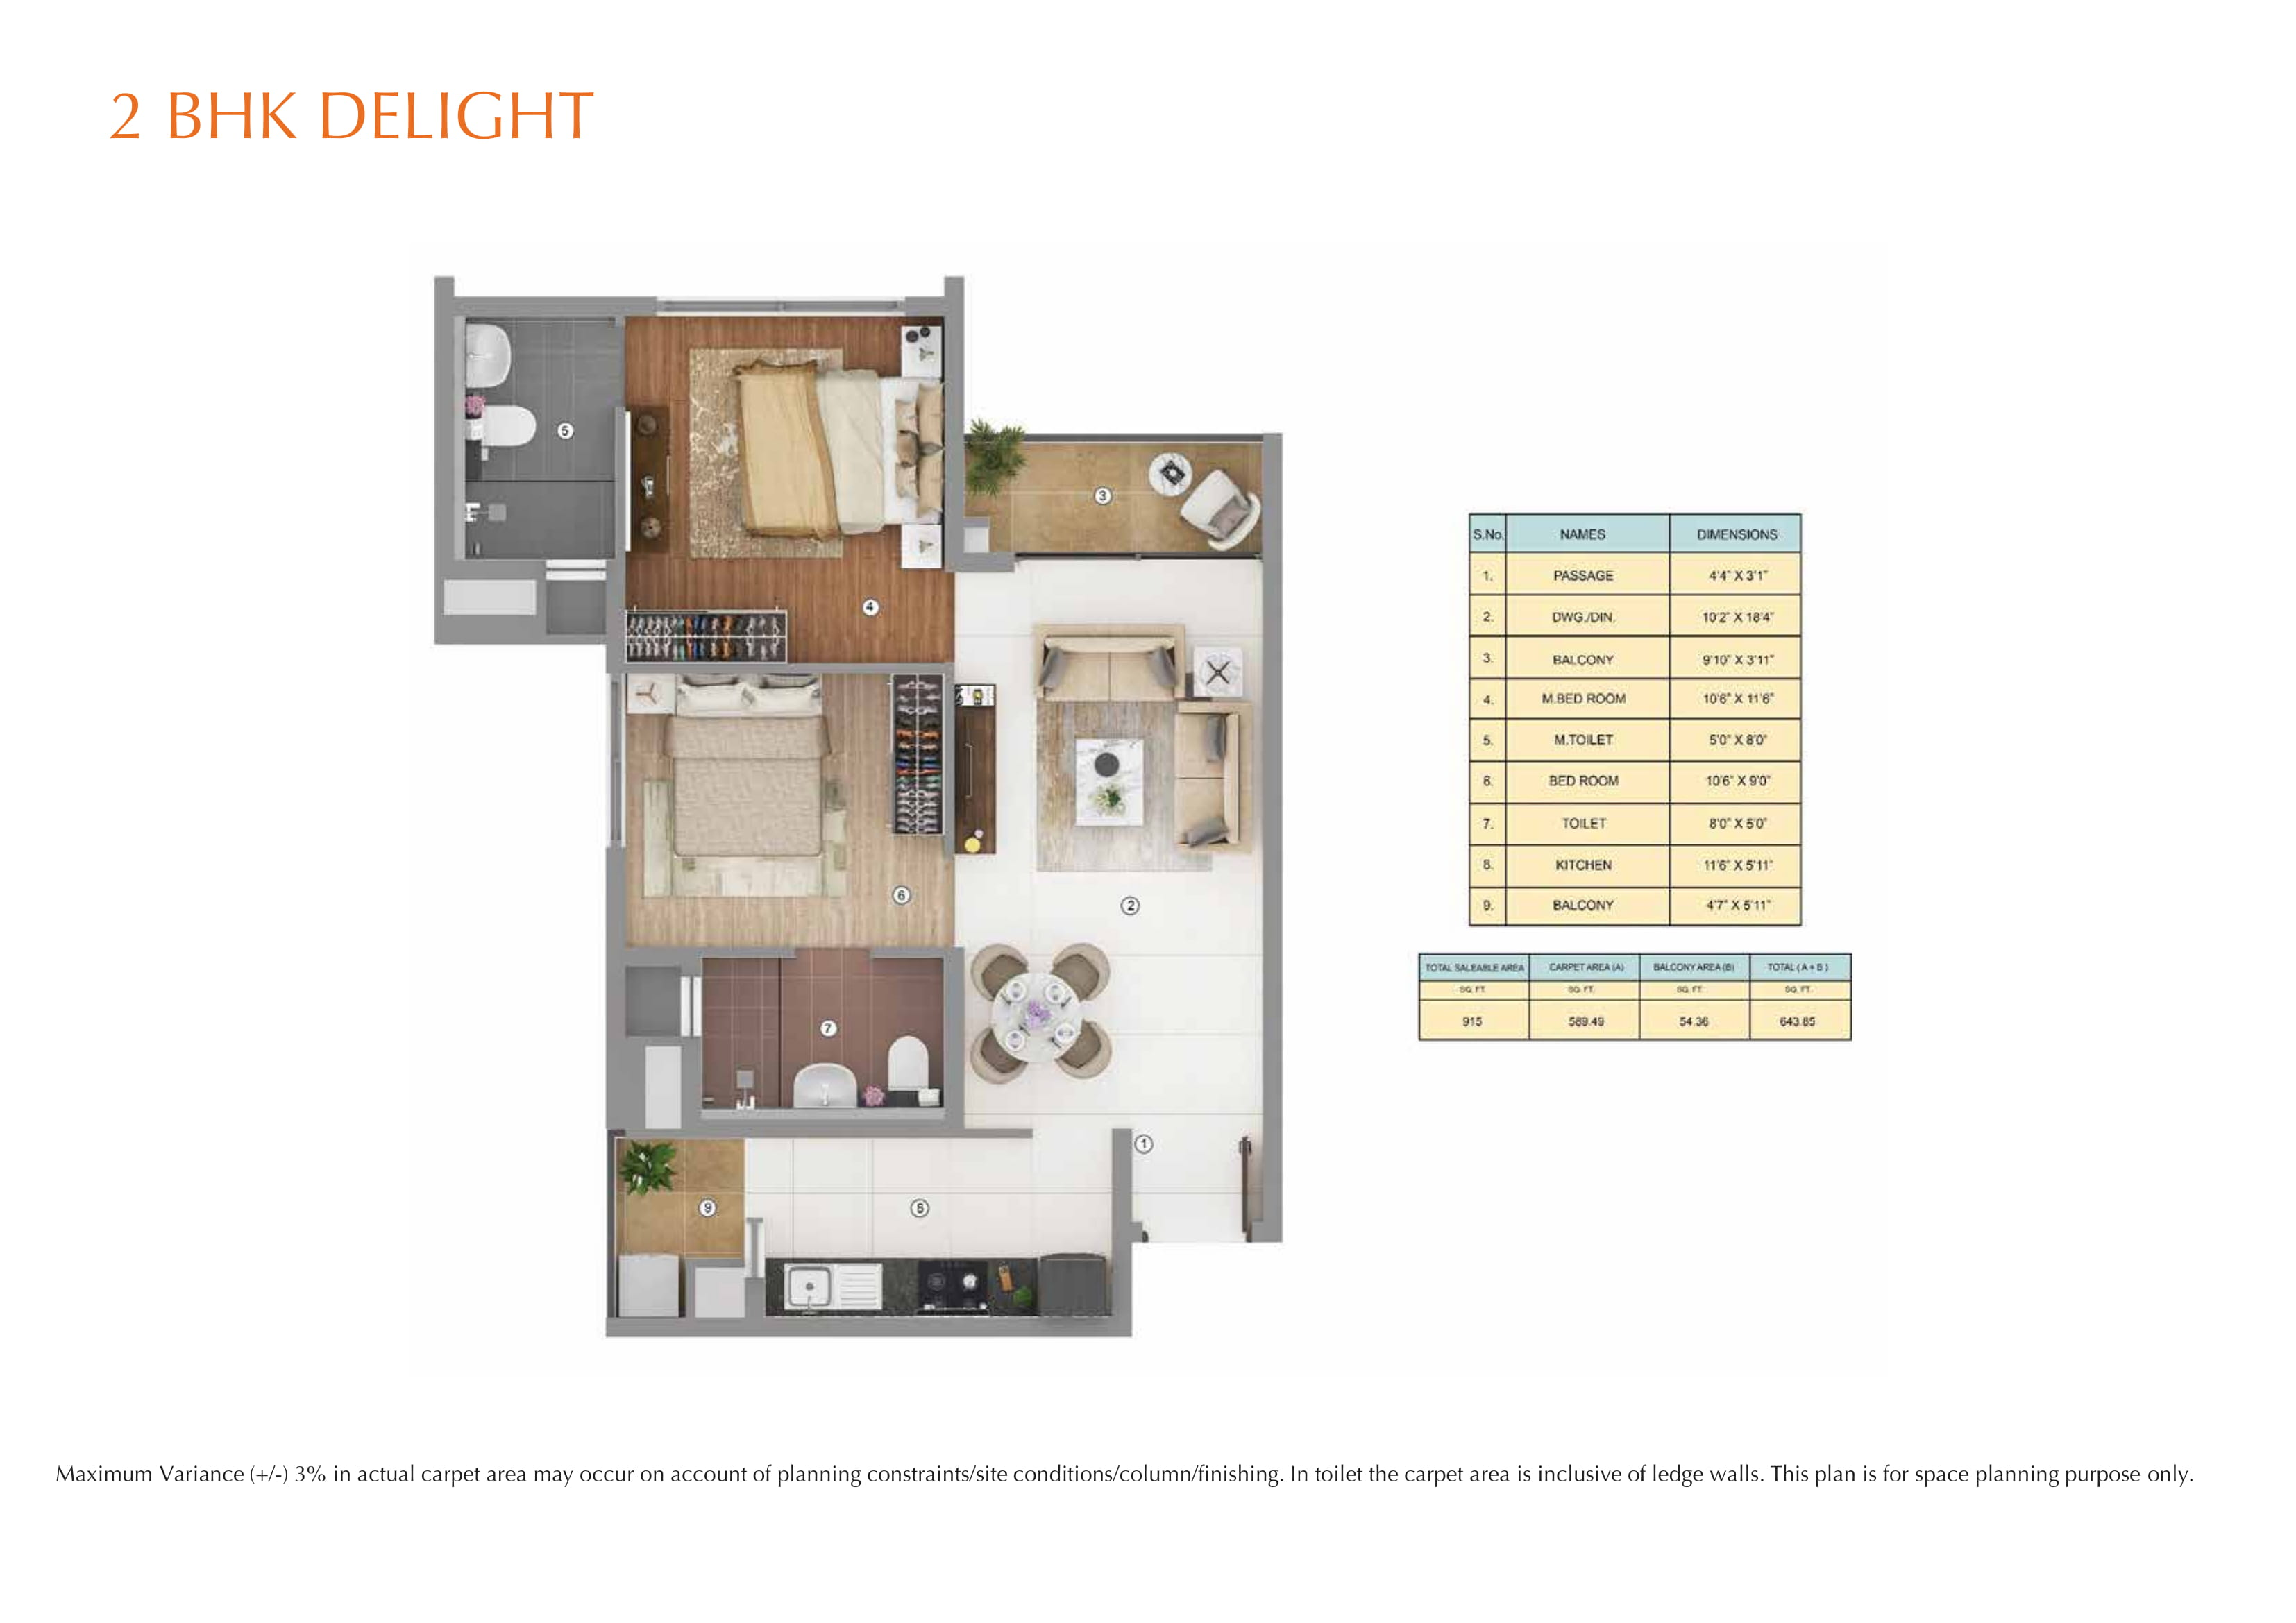 2BHK DELIGHT Layout Plan